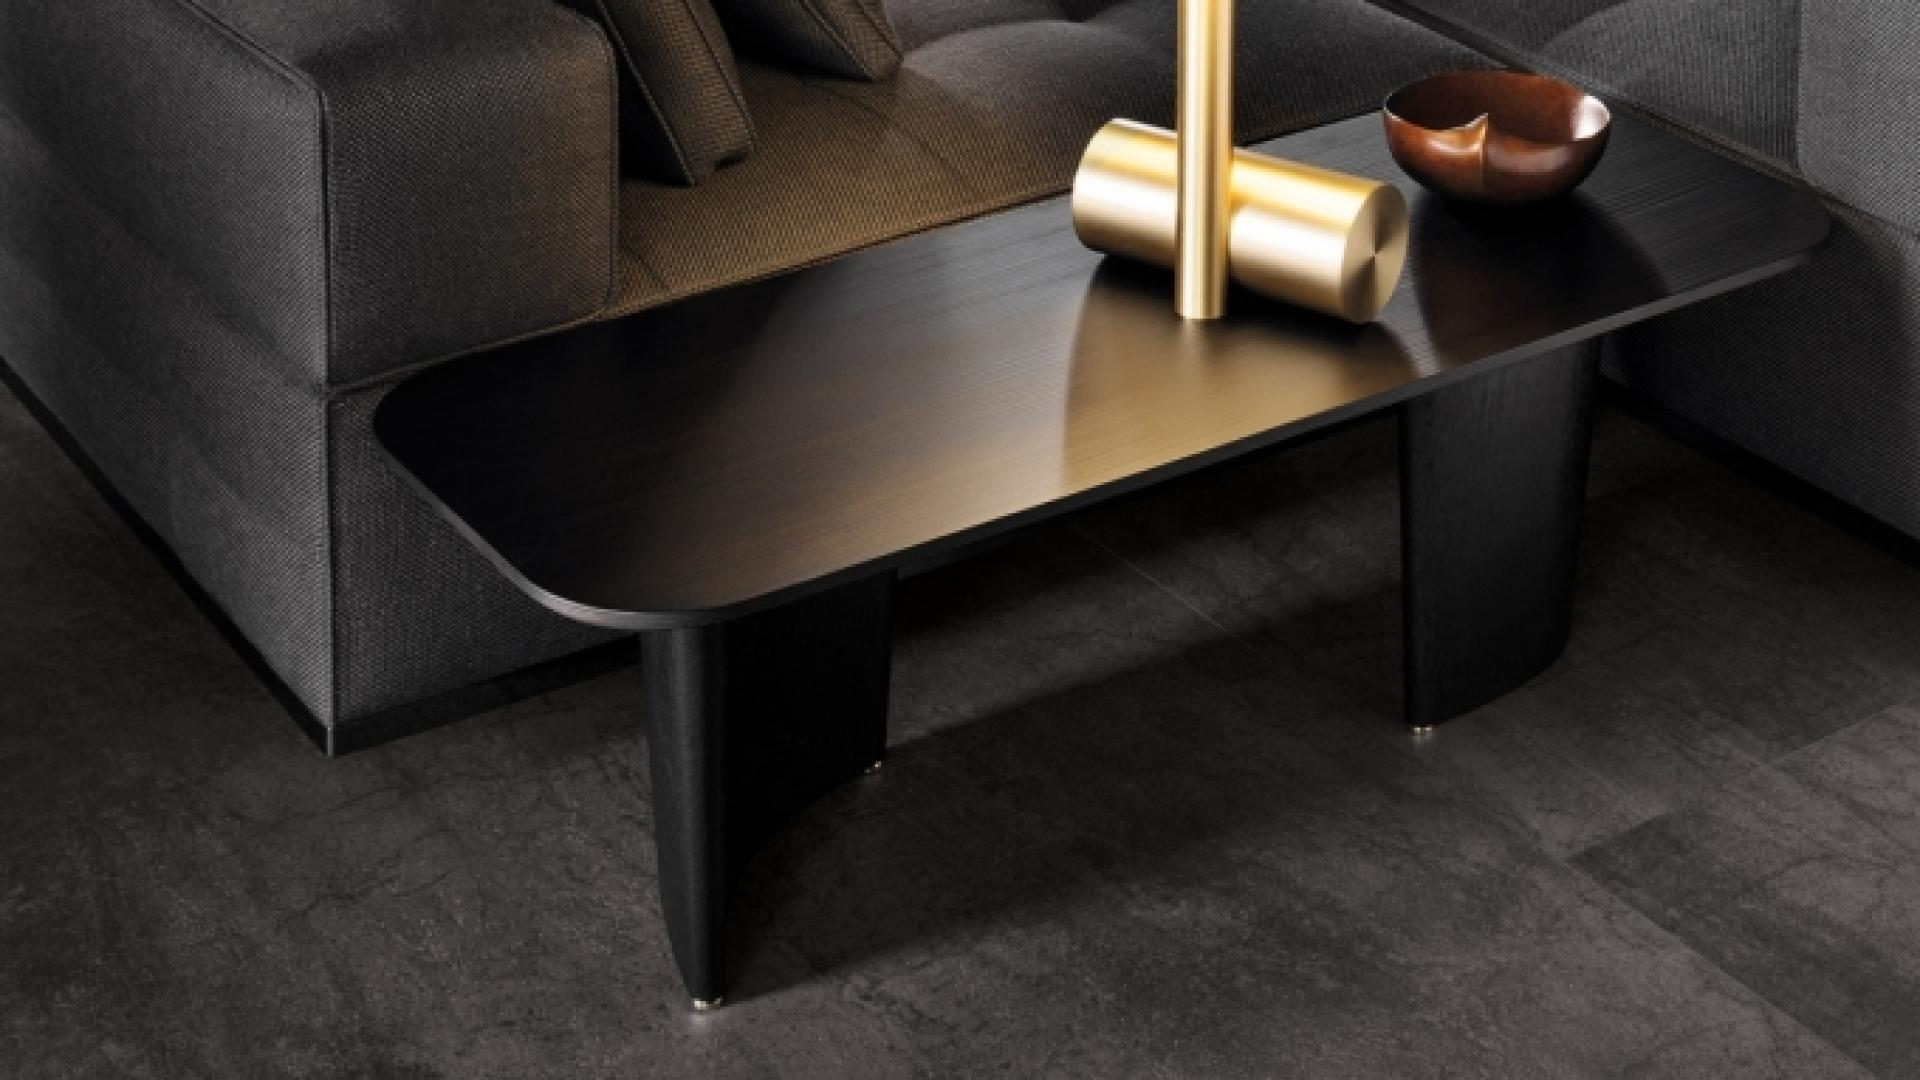 Wondrous Song Coffee Table Hora Caraccident5 Cool Chair Designs And Ideas Caraccident5Info